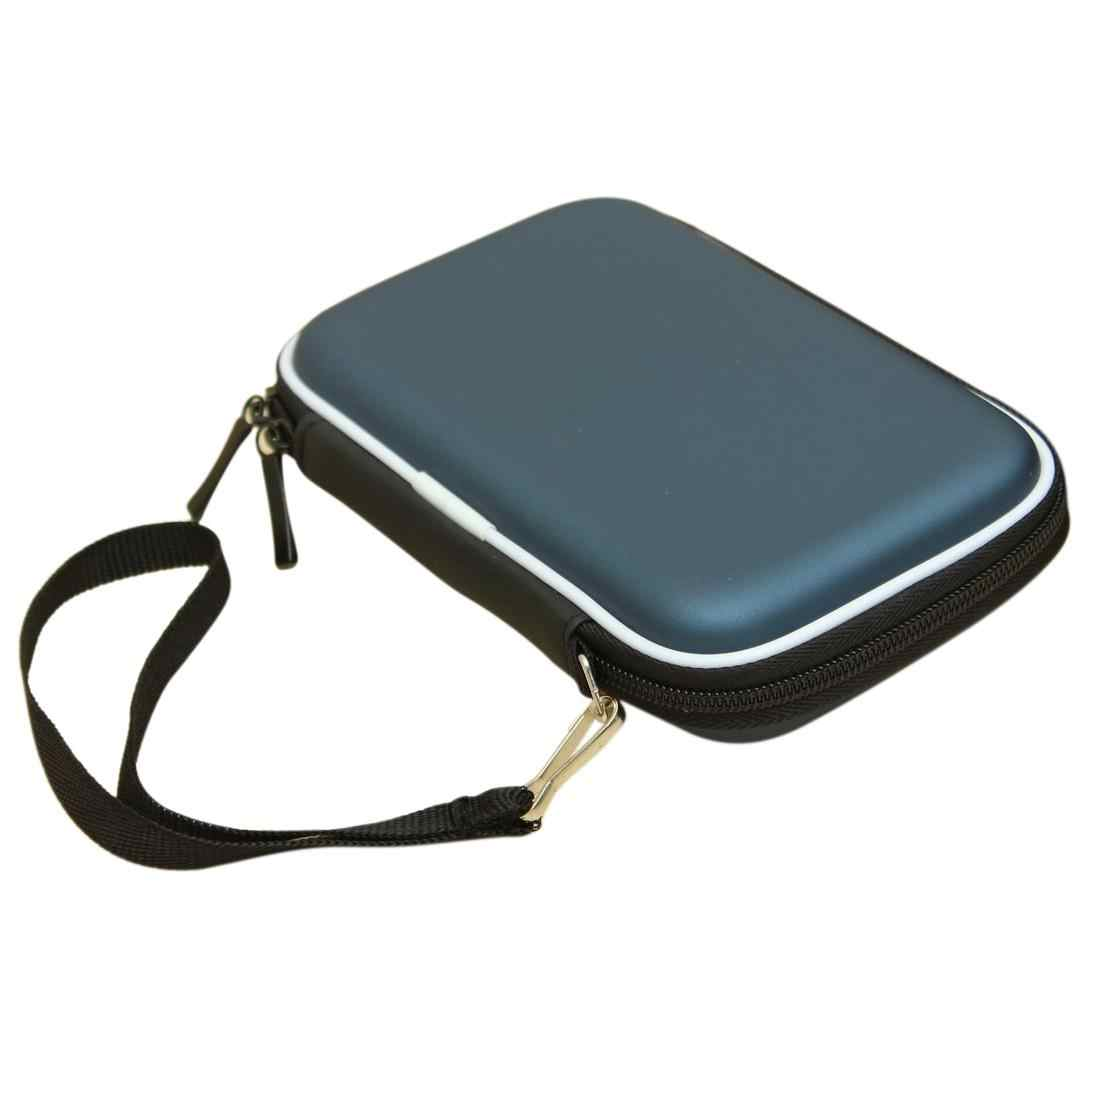 "Carry Case Cover Pouch Bag for 2.5"" USB External Hard Disk Drive Protect"